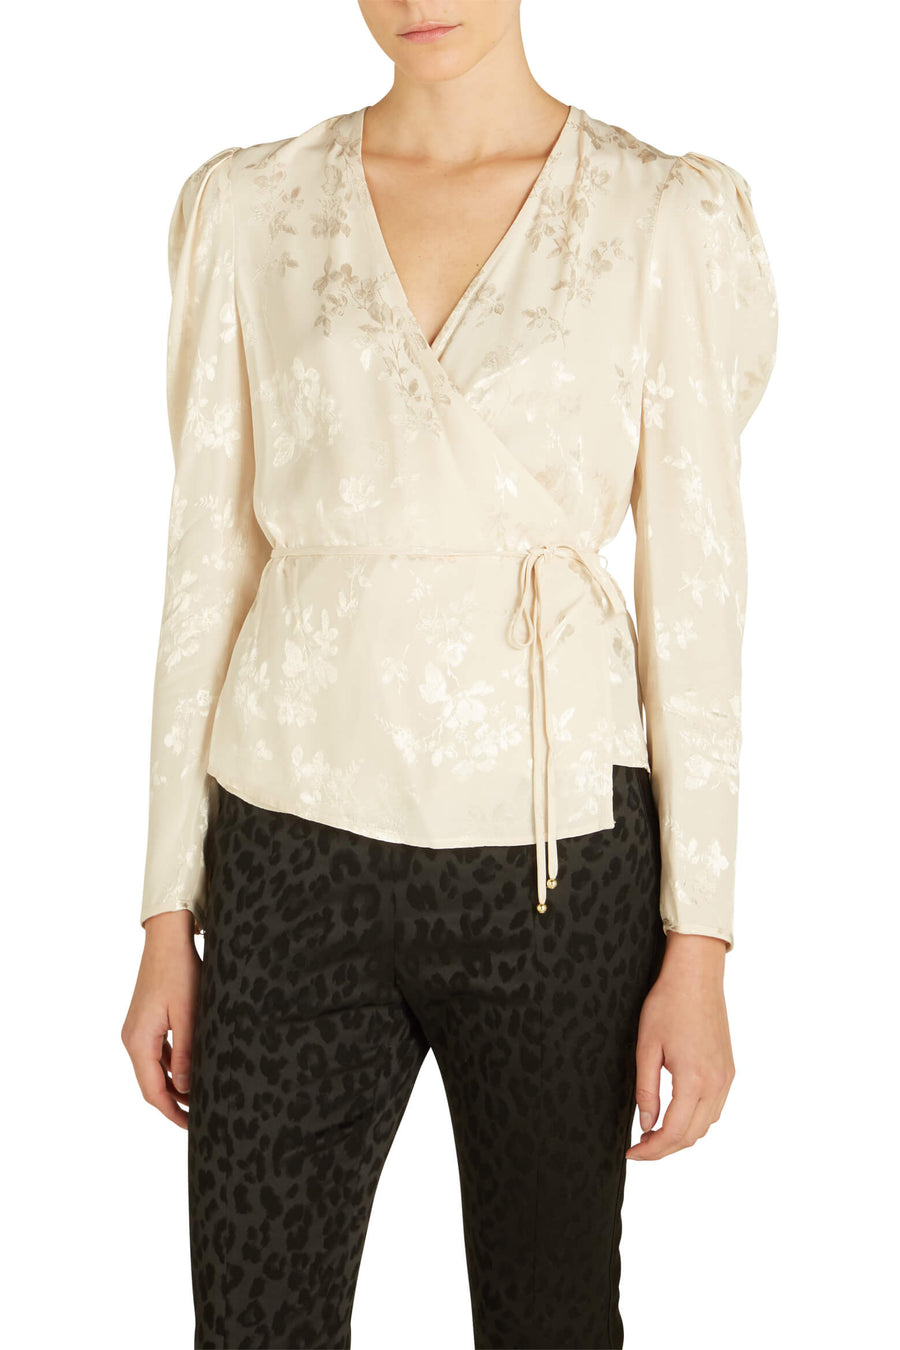 Veronica Beard Eden Blouse from The New Trend